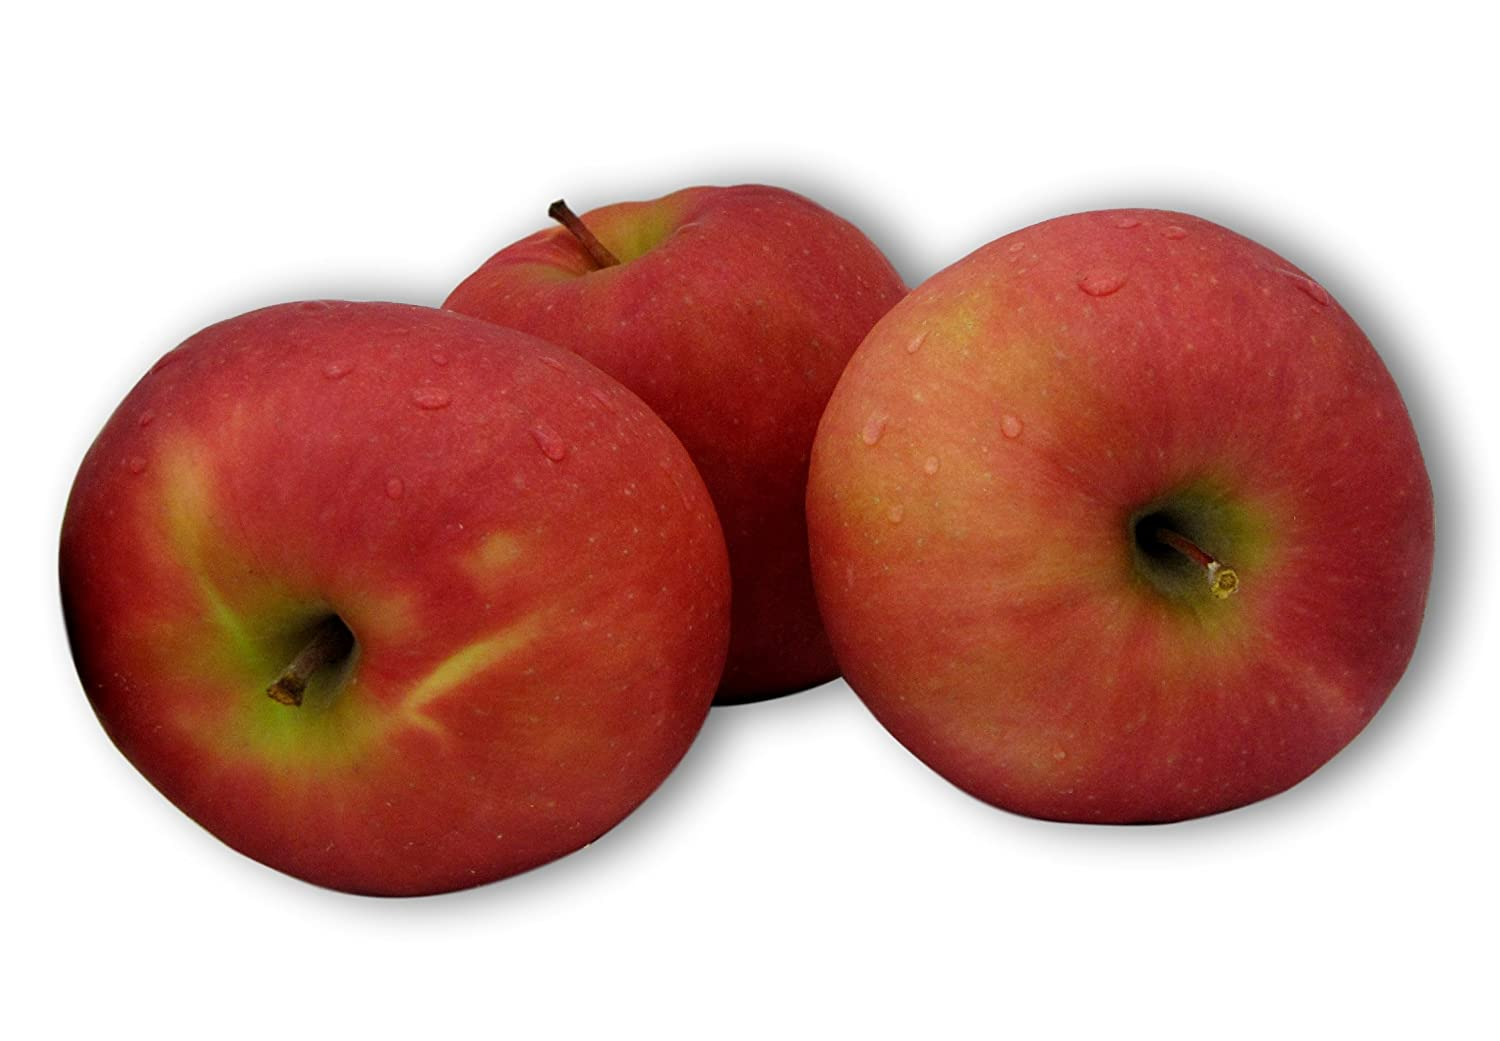 Kauffman's Fresh Pink Lady Apples